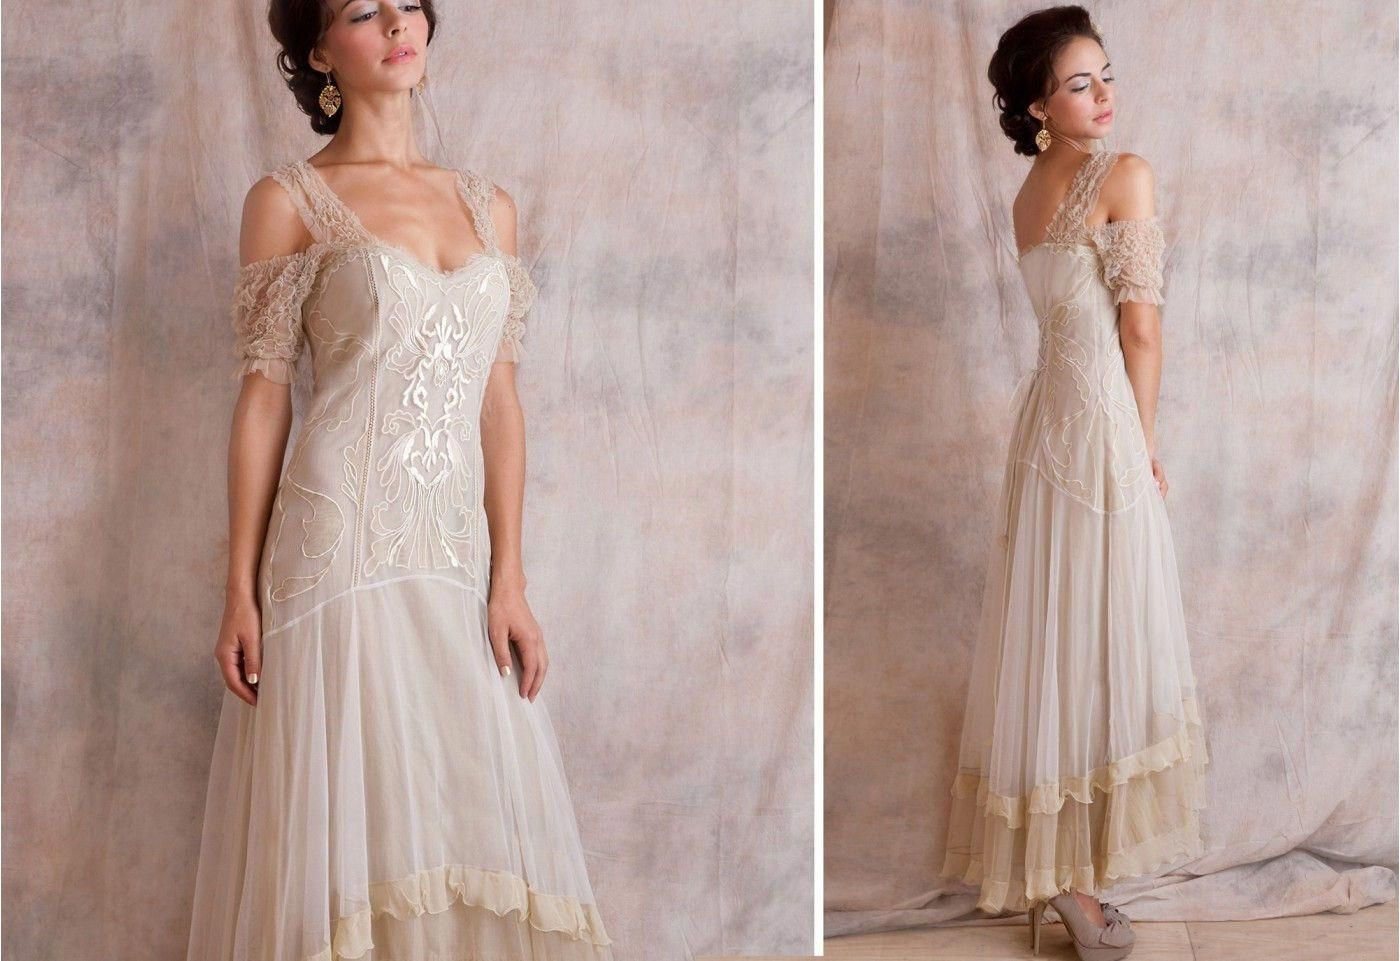 Nd marriage wedding dresses for over google search